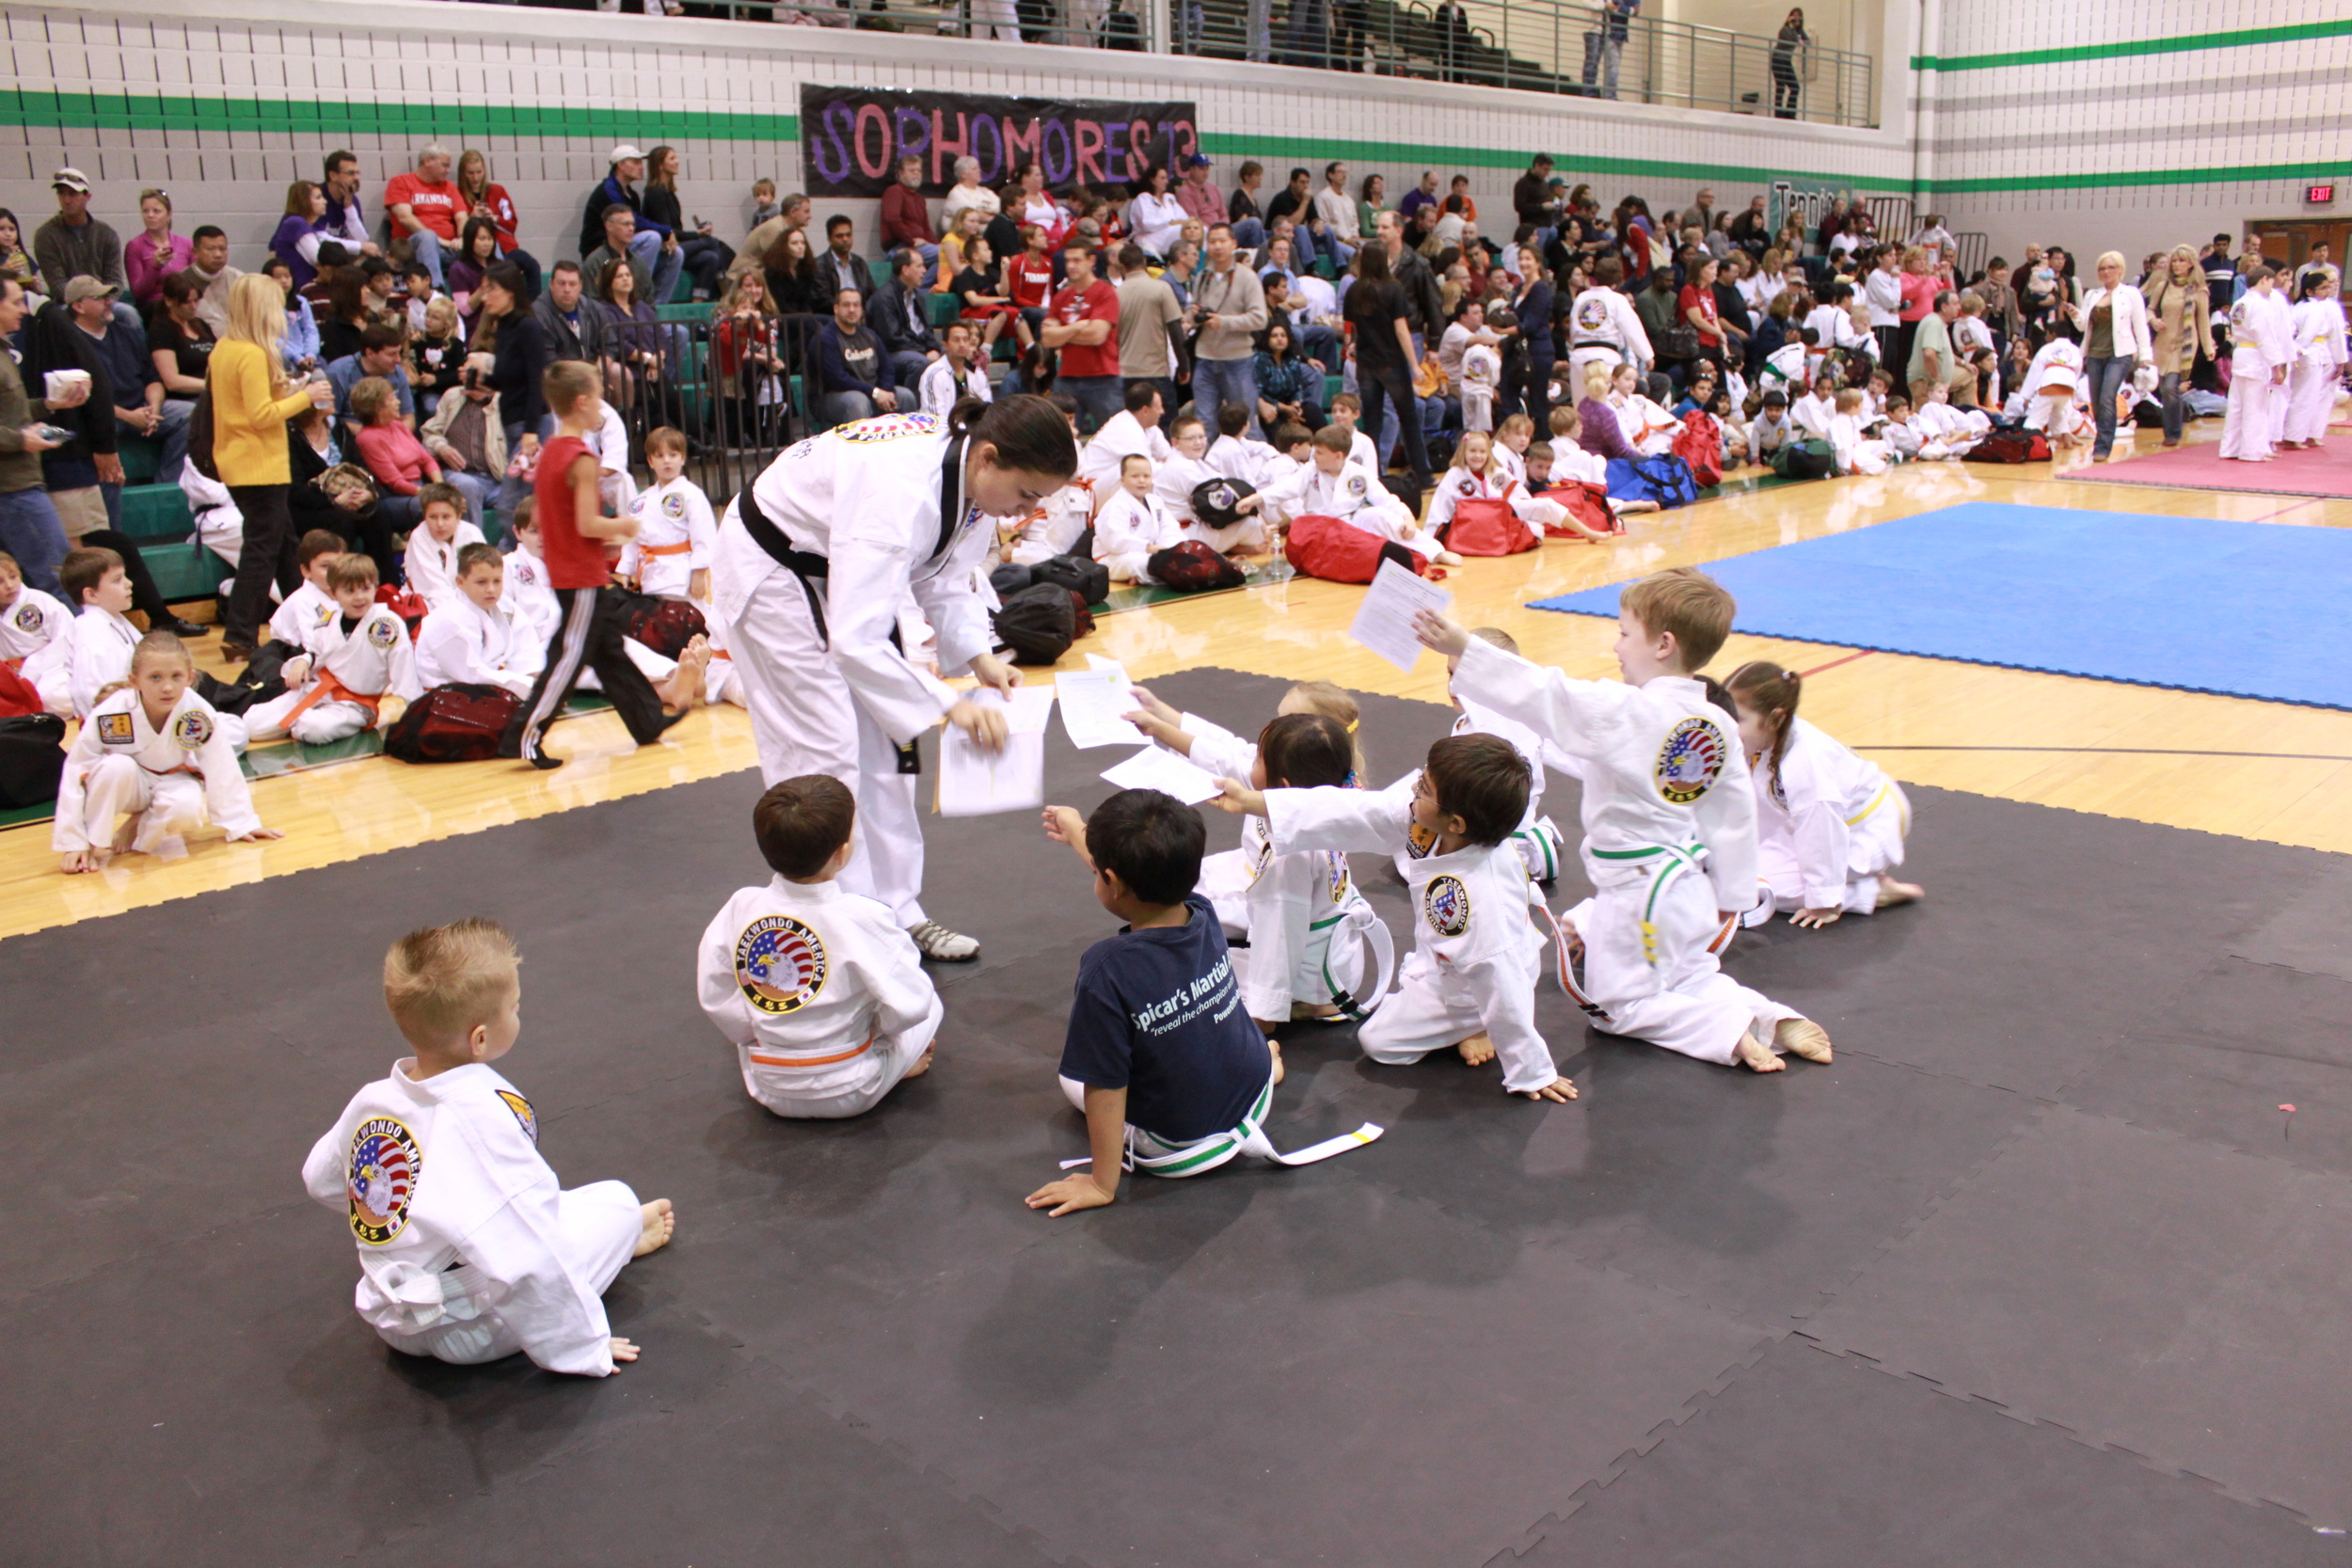 Mrs. Spicar starting our youngest (4 and 5 year old) students for their martial arts competition.